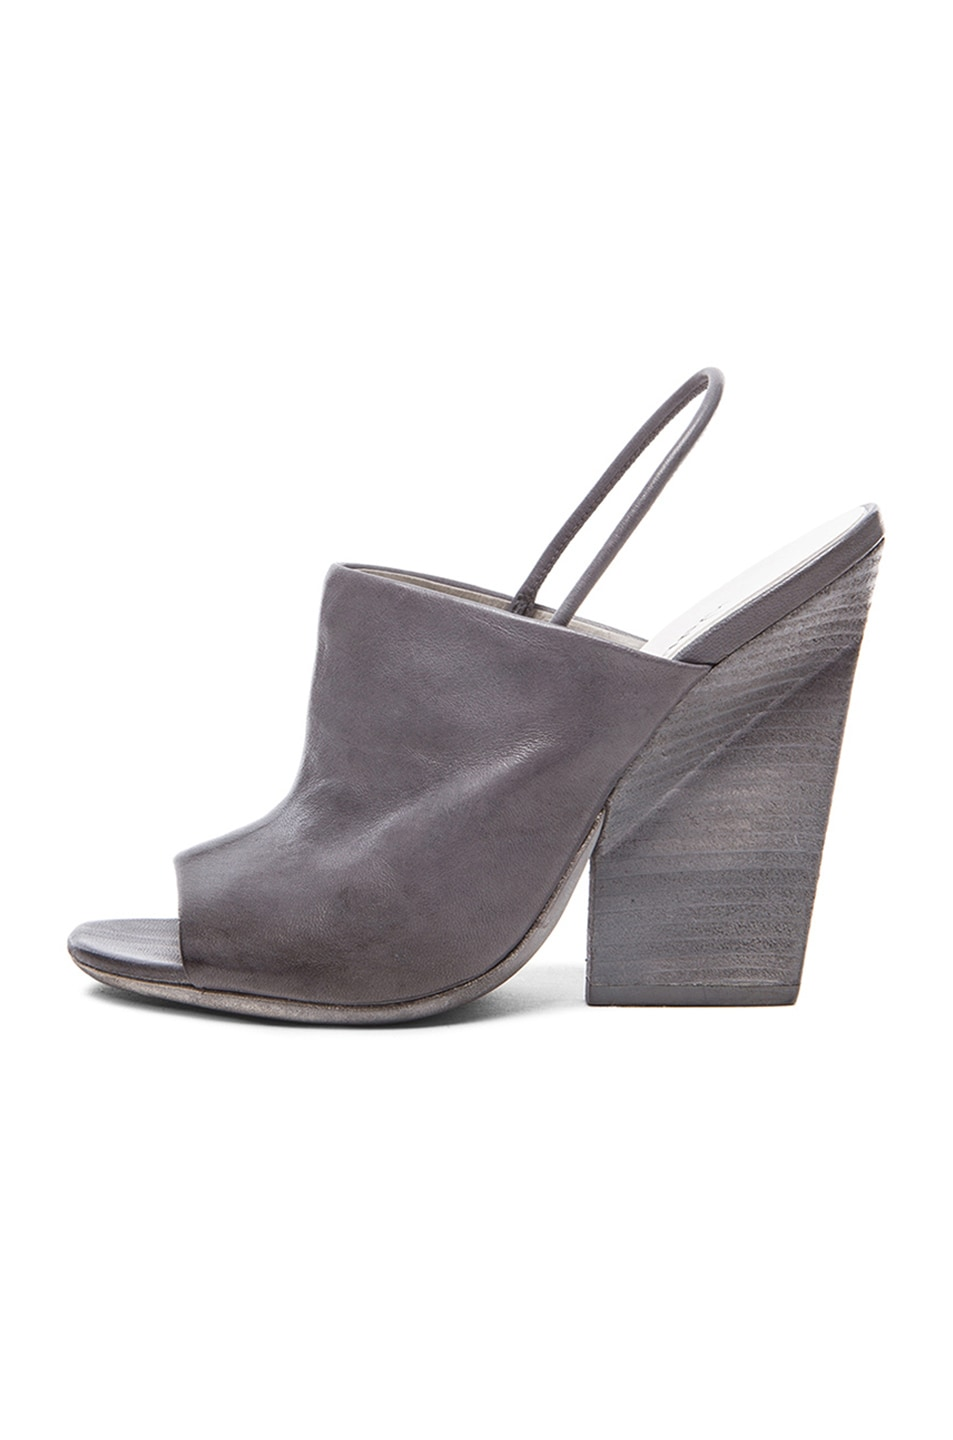 Image 5 of Marsell Chunky Heel Open Toe Leather Sandals in Lead